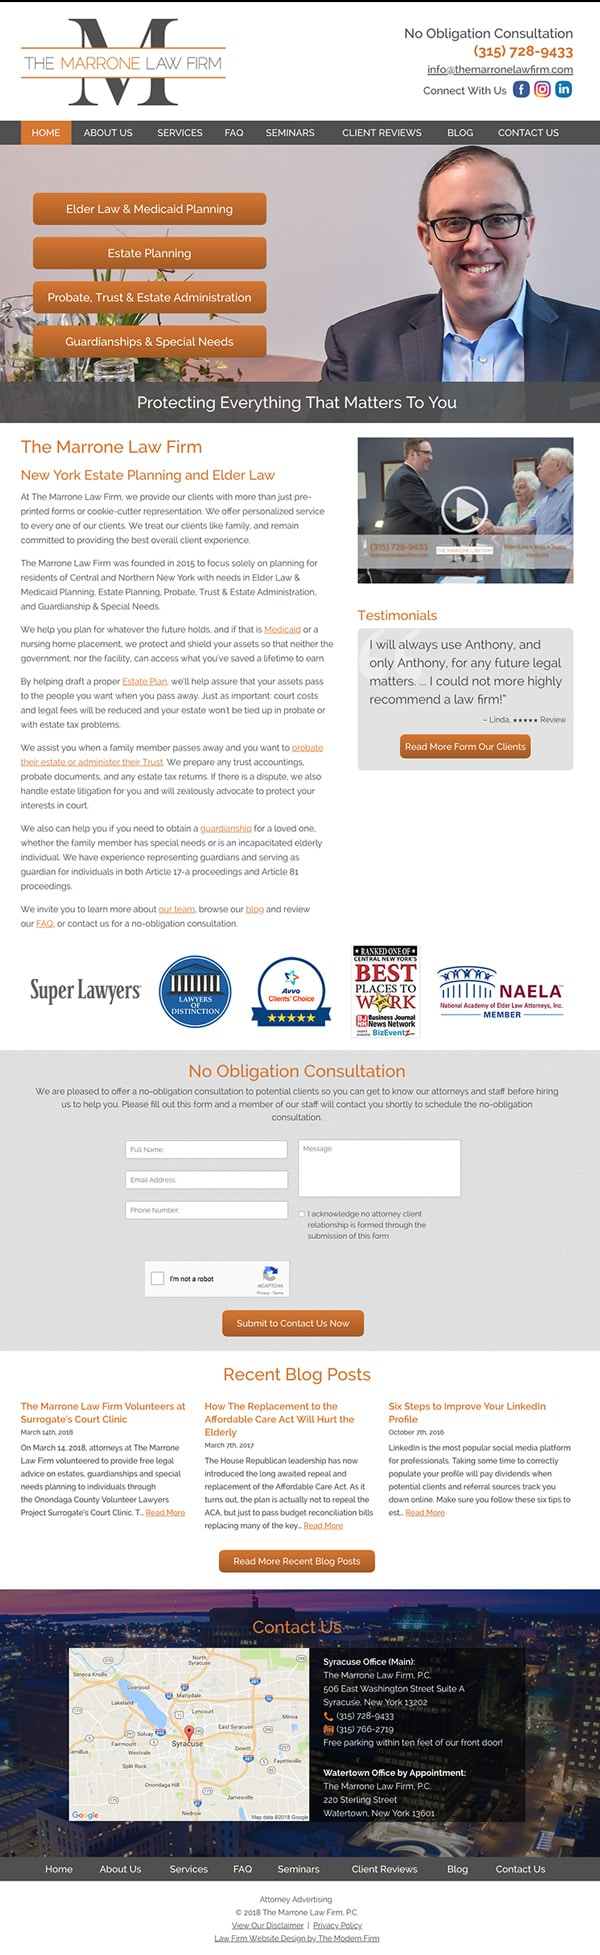 Law Firm Website Design for The Marrone Law Firm, P.C.